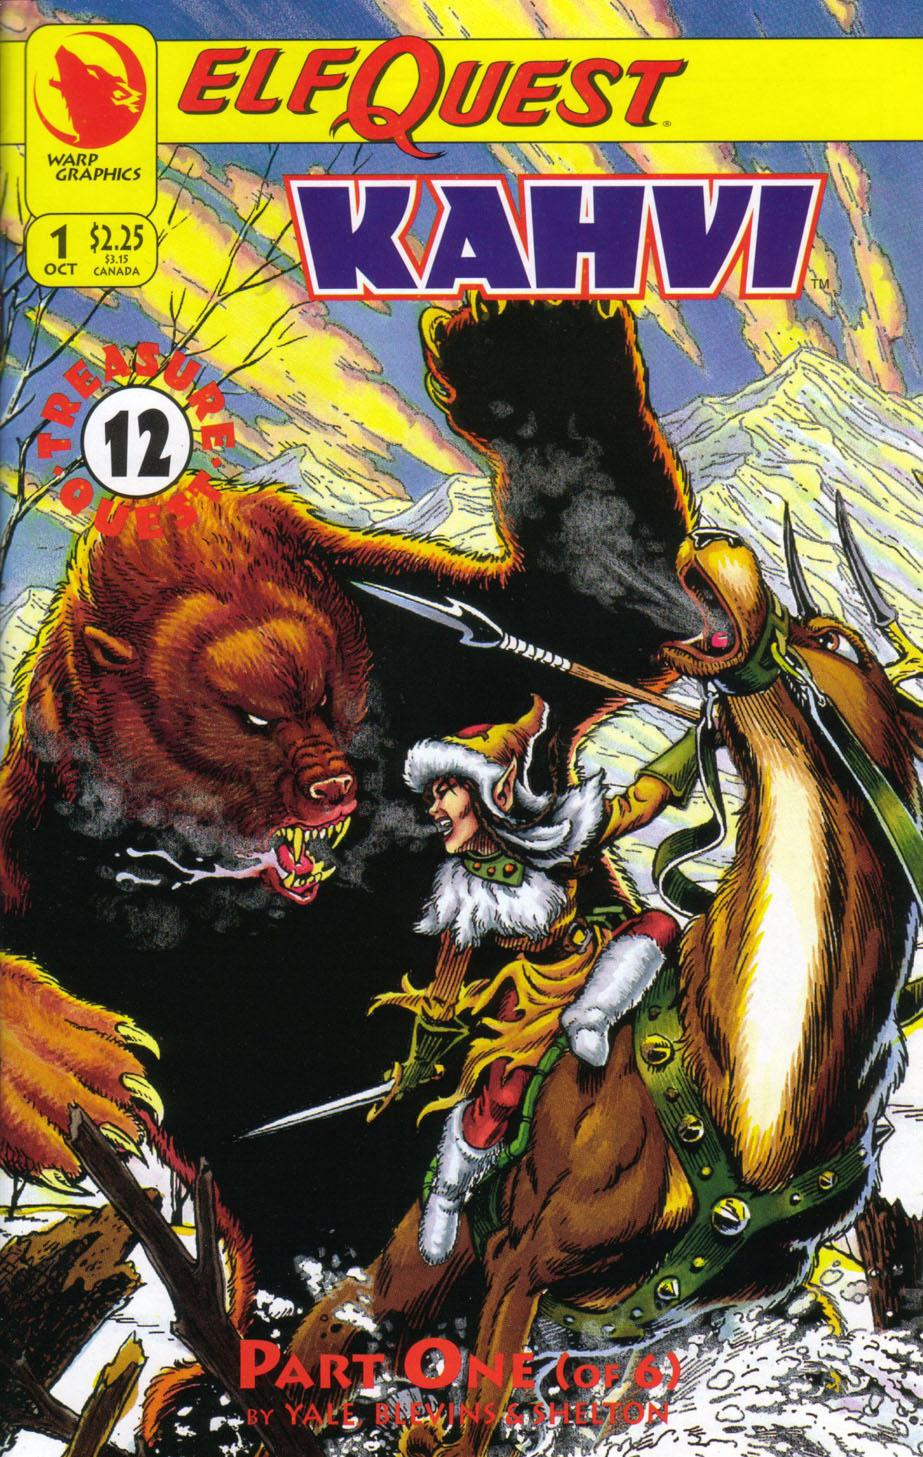 Elfquest: Kahvi Vol 1 1